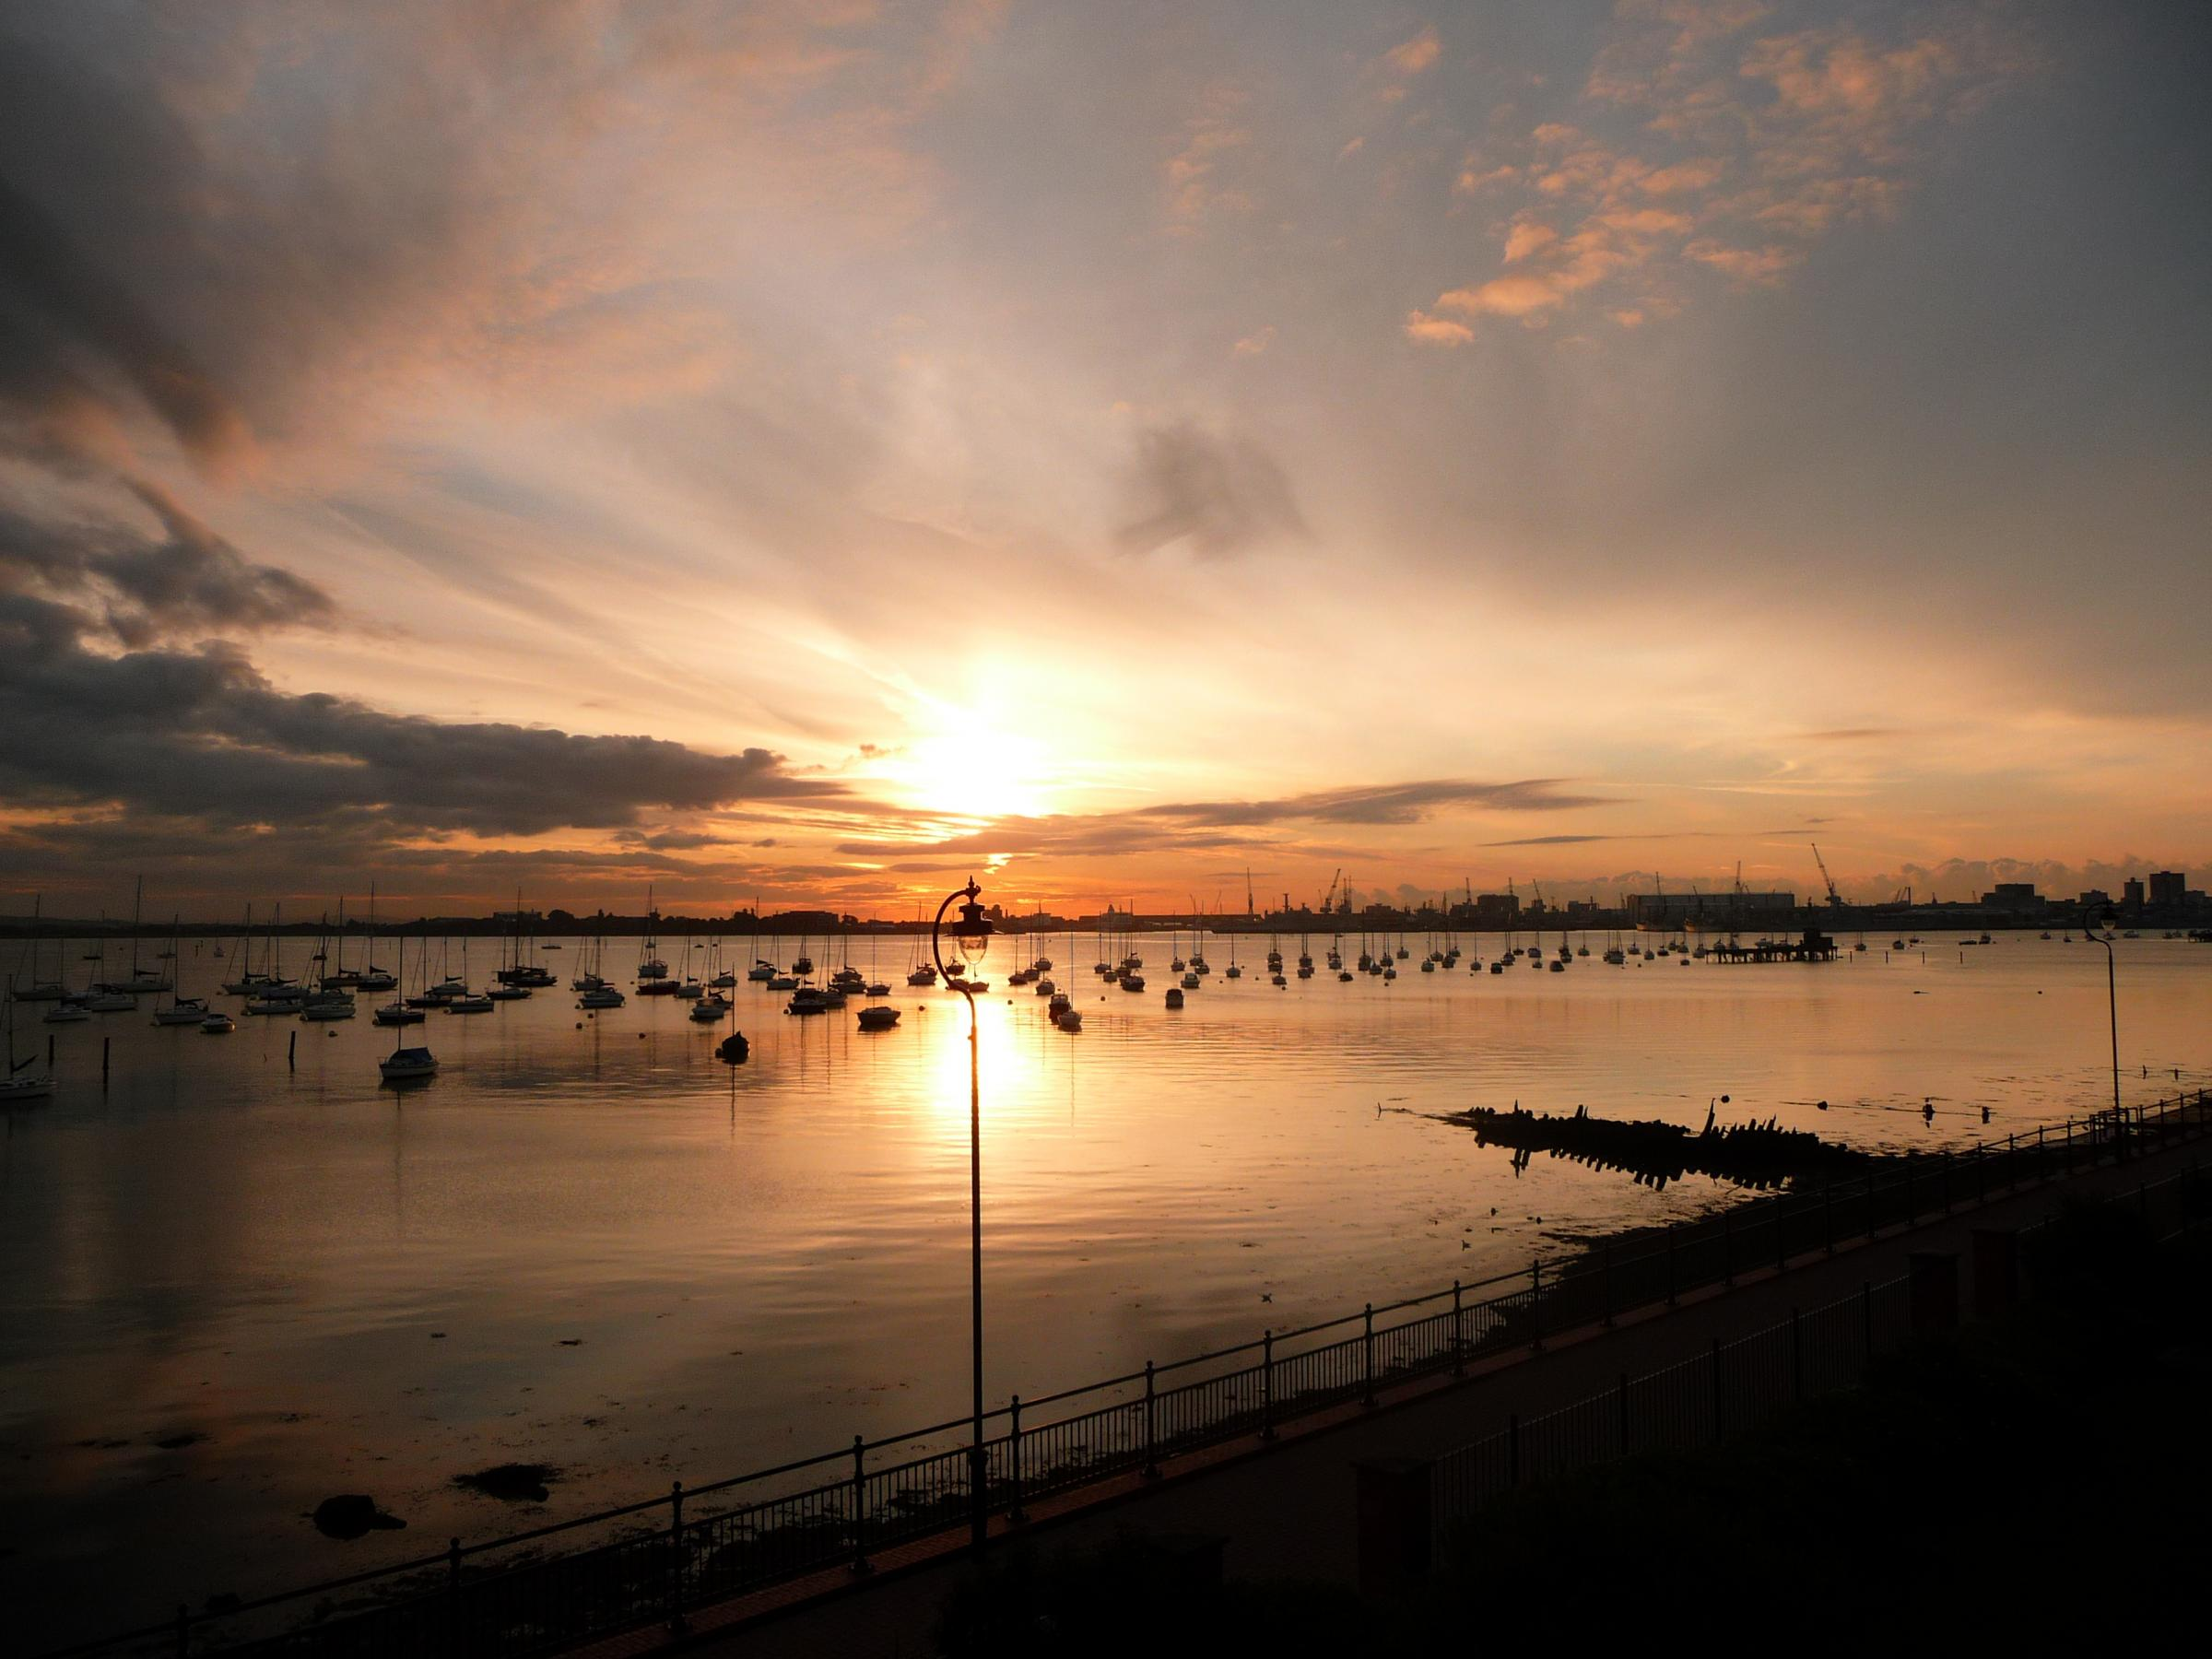 Bradford man wins maritime photo competition